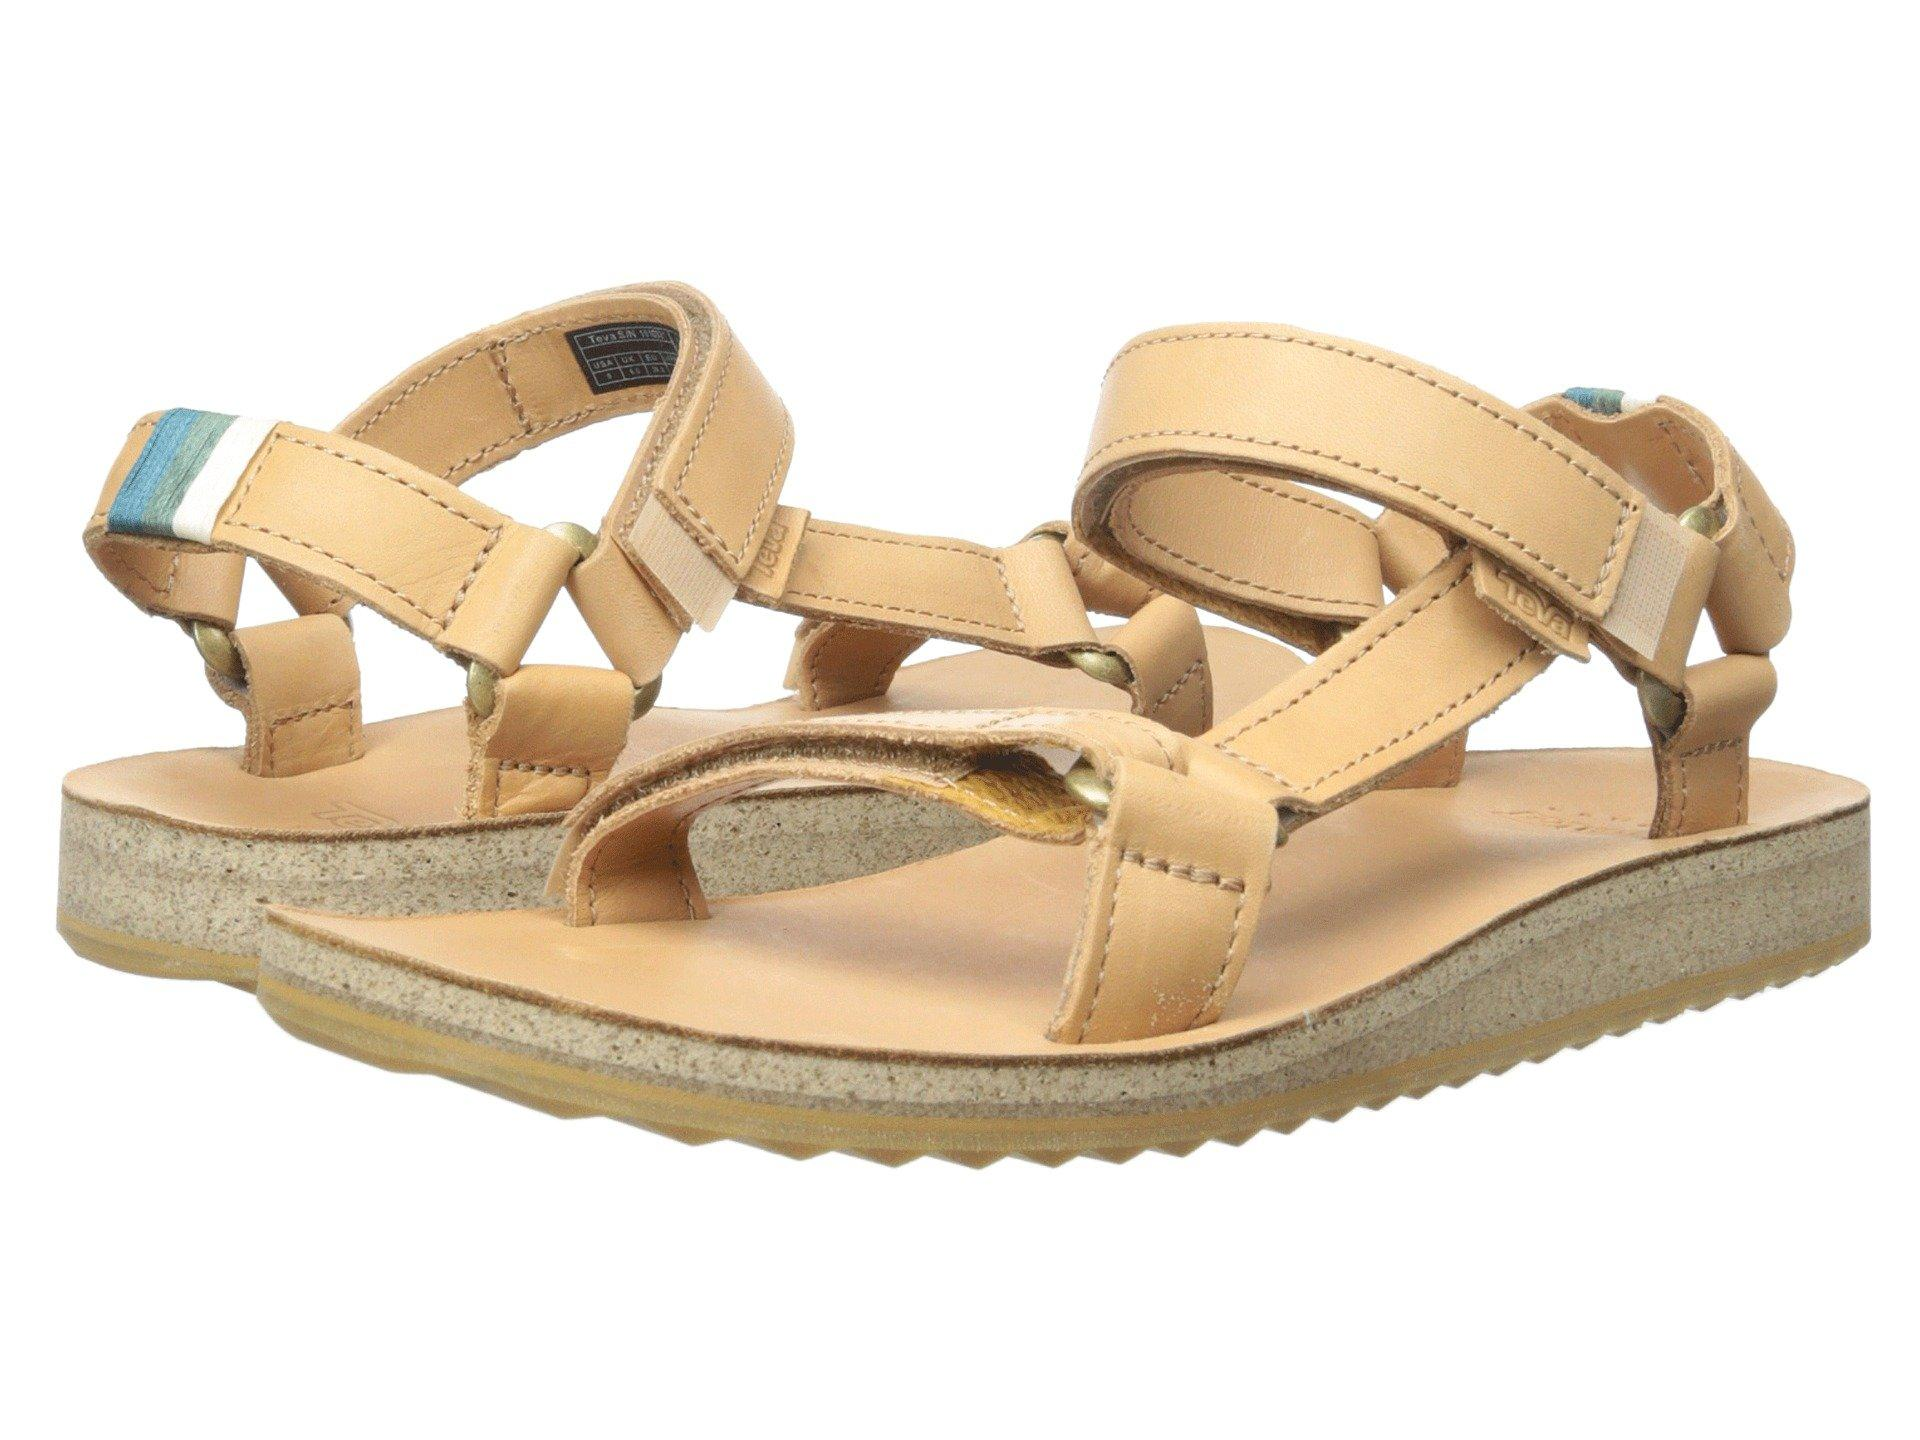 74bbfd668 Teva Original Universal Crafted Leather In Tan